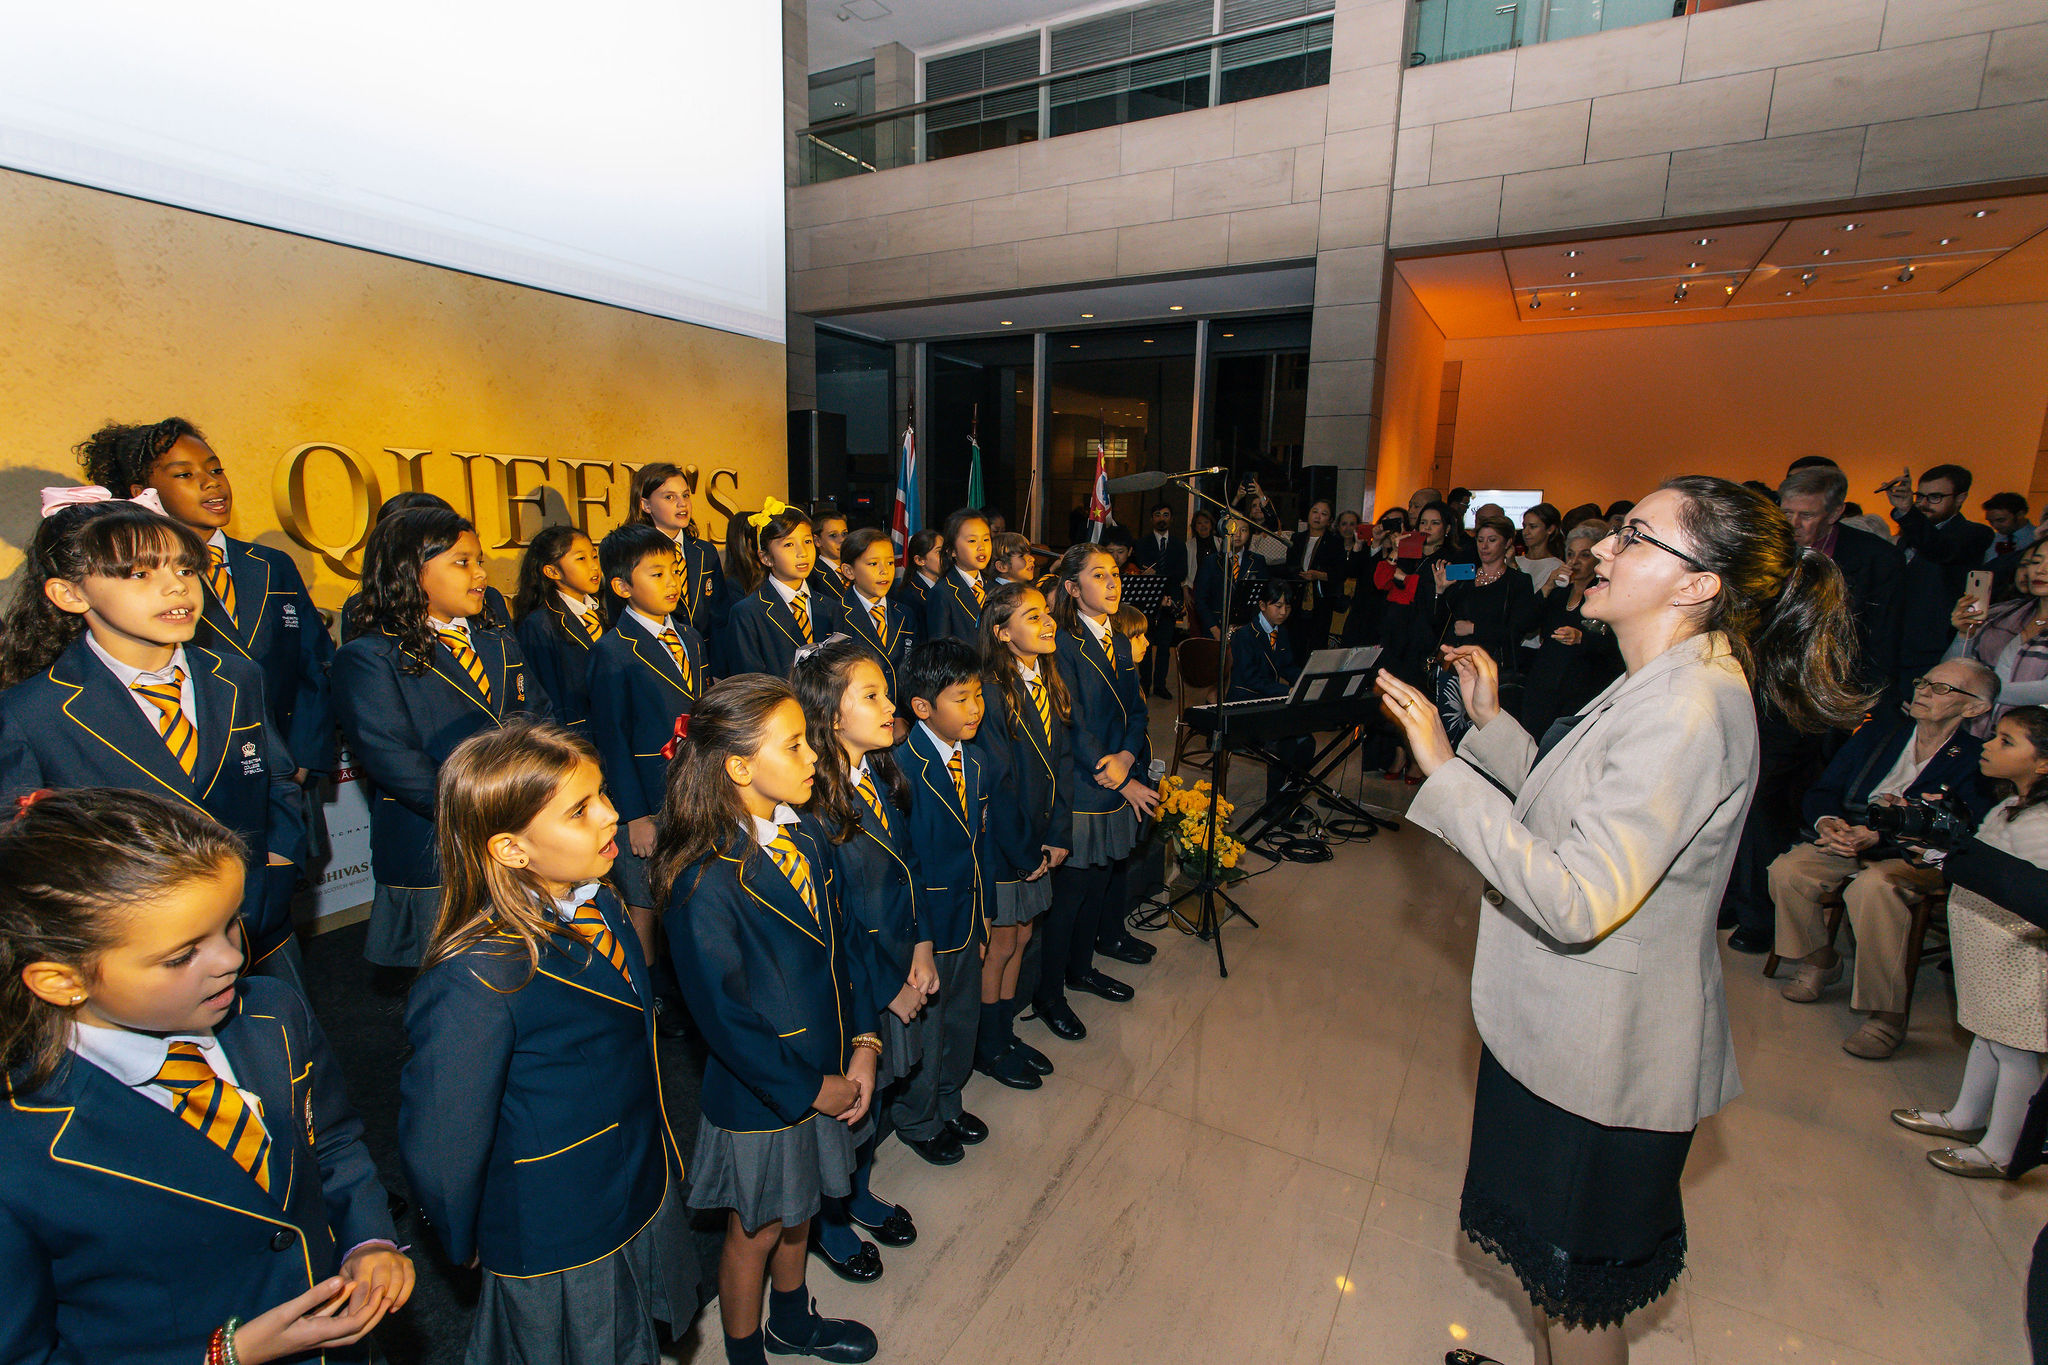 British College of Brazil Choir conducted by Professor Silvia Bechara.